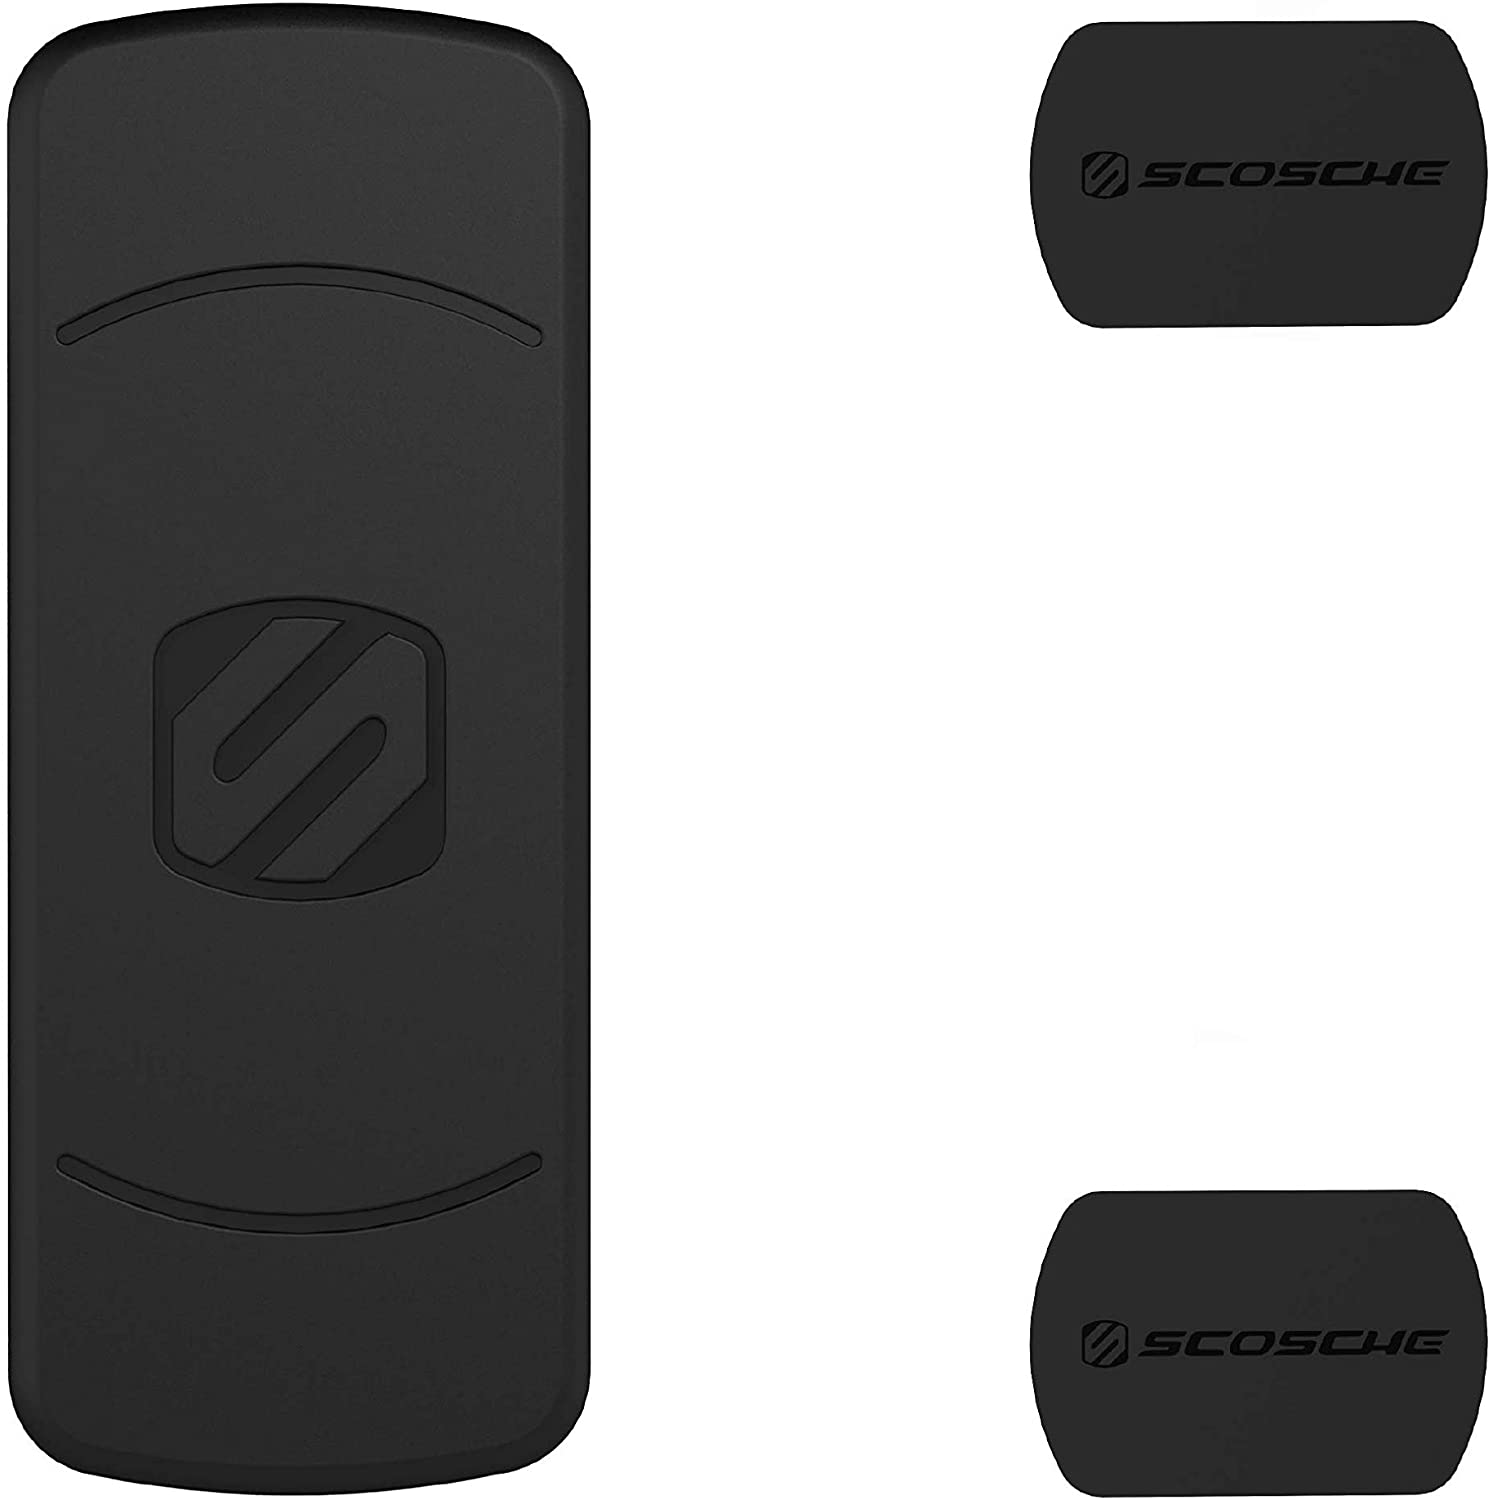 Scosche MDMRK-XCES0 MagicMount Magnetic Mount Replacement Plate Kit for Mobile Devices - Black